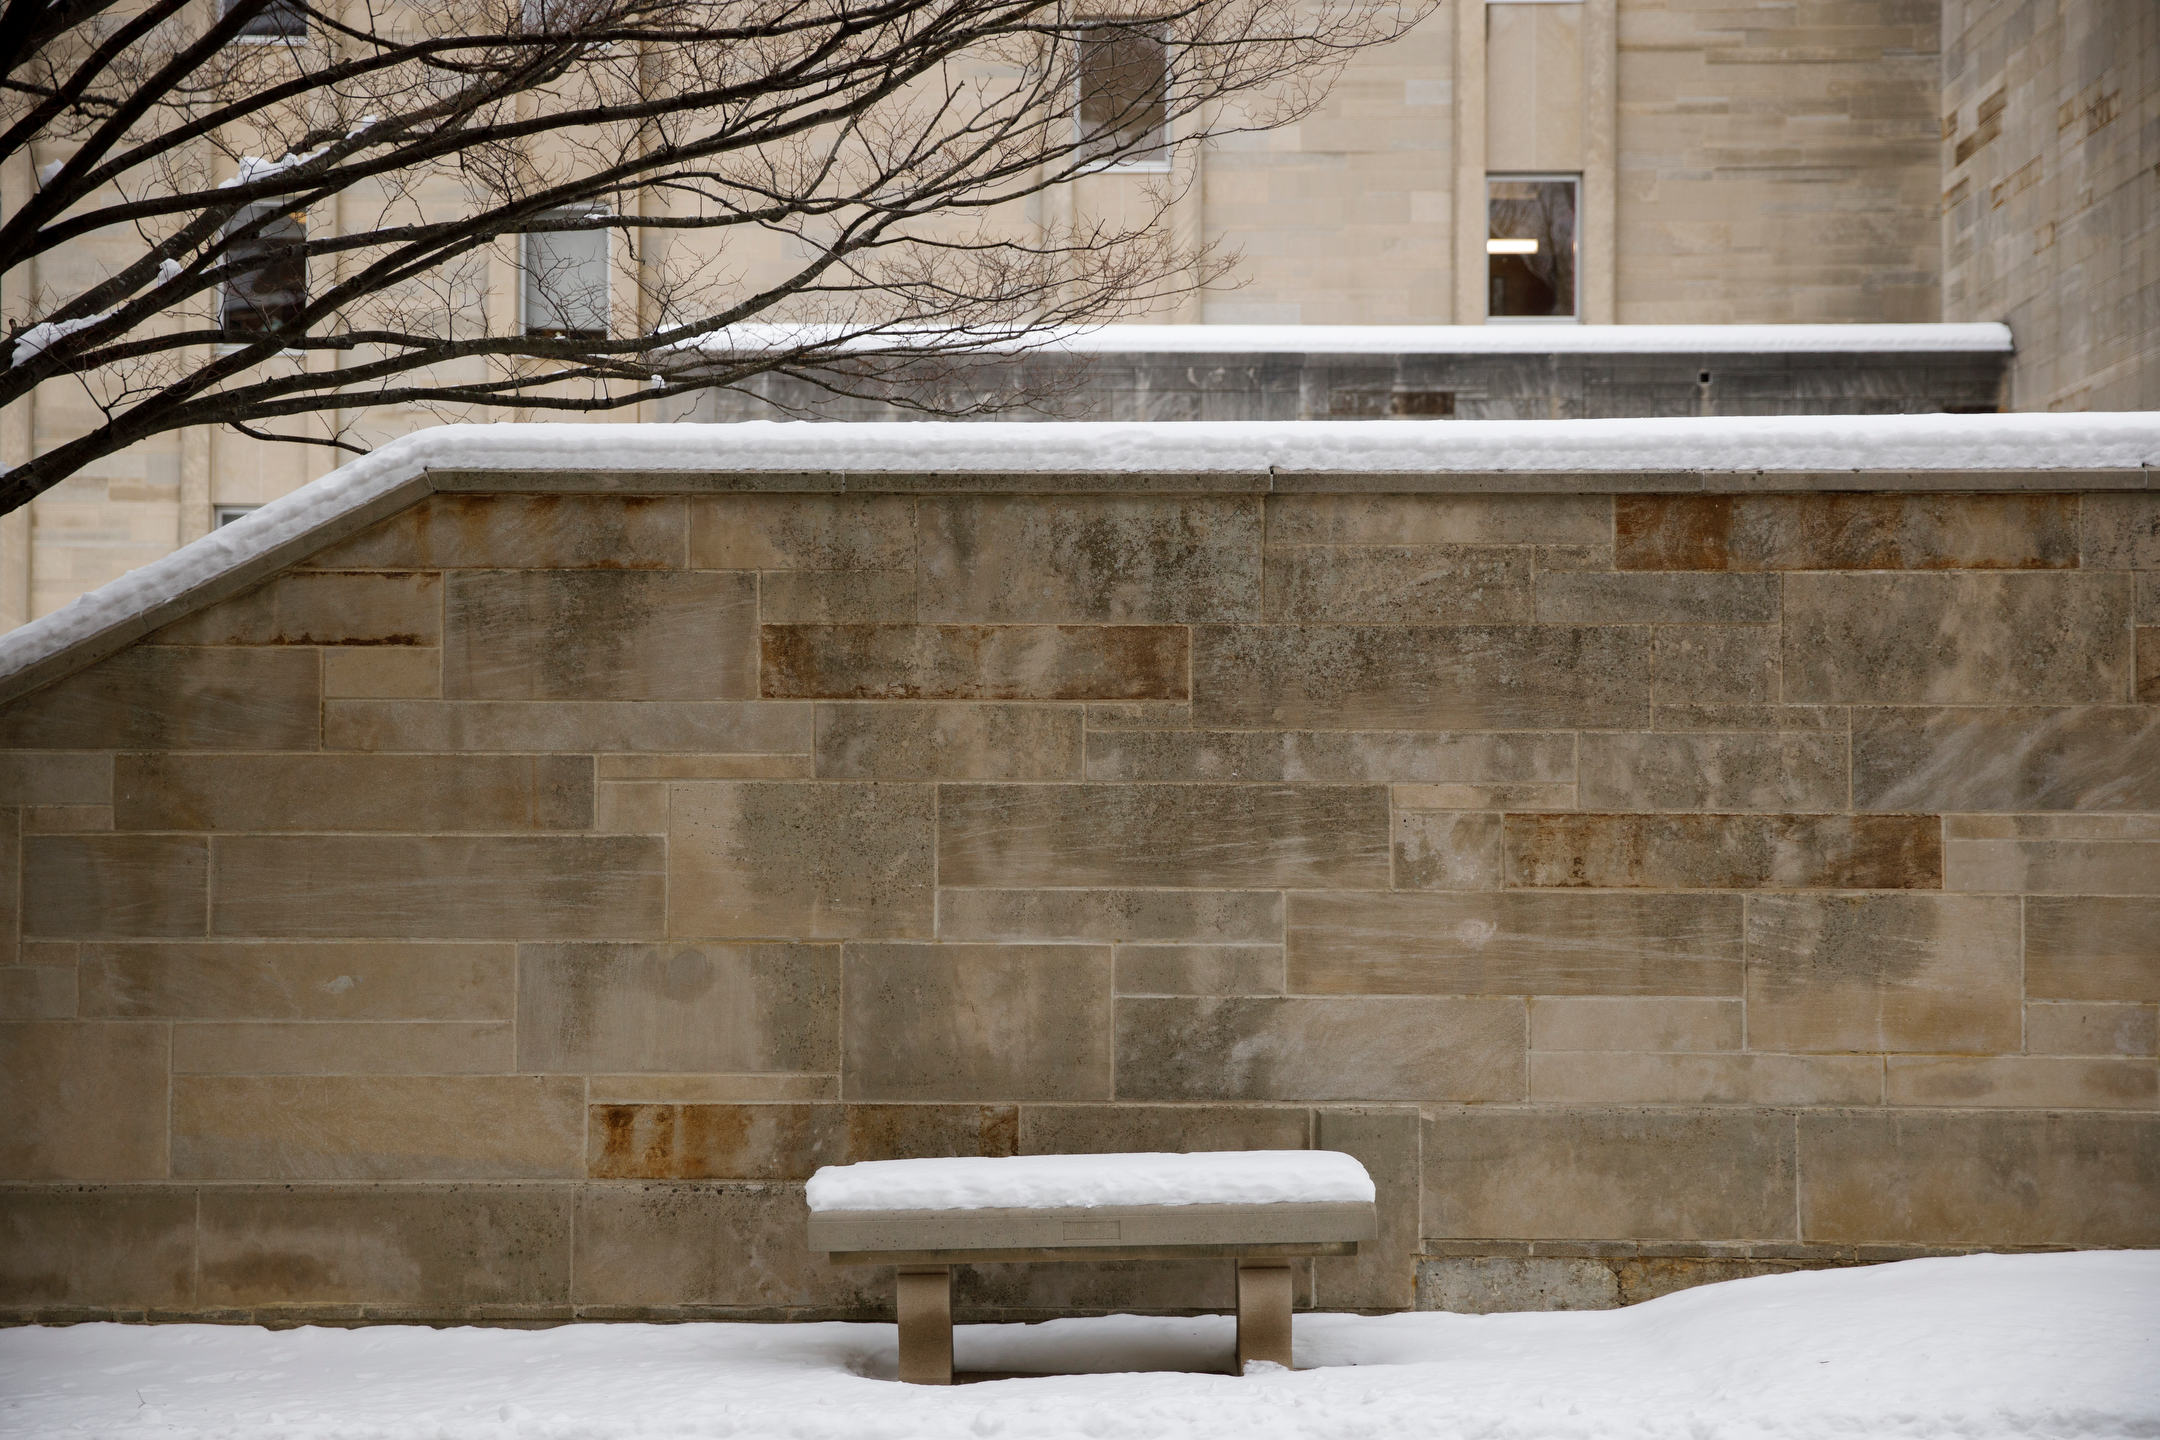 Snow covers a bench and wall near the Chemistry Building on a winter day at Indiana University Bloomington on Wednesday, Feb. 10, 2021.